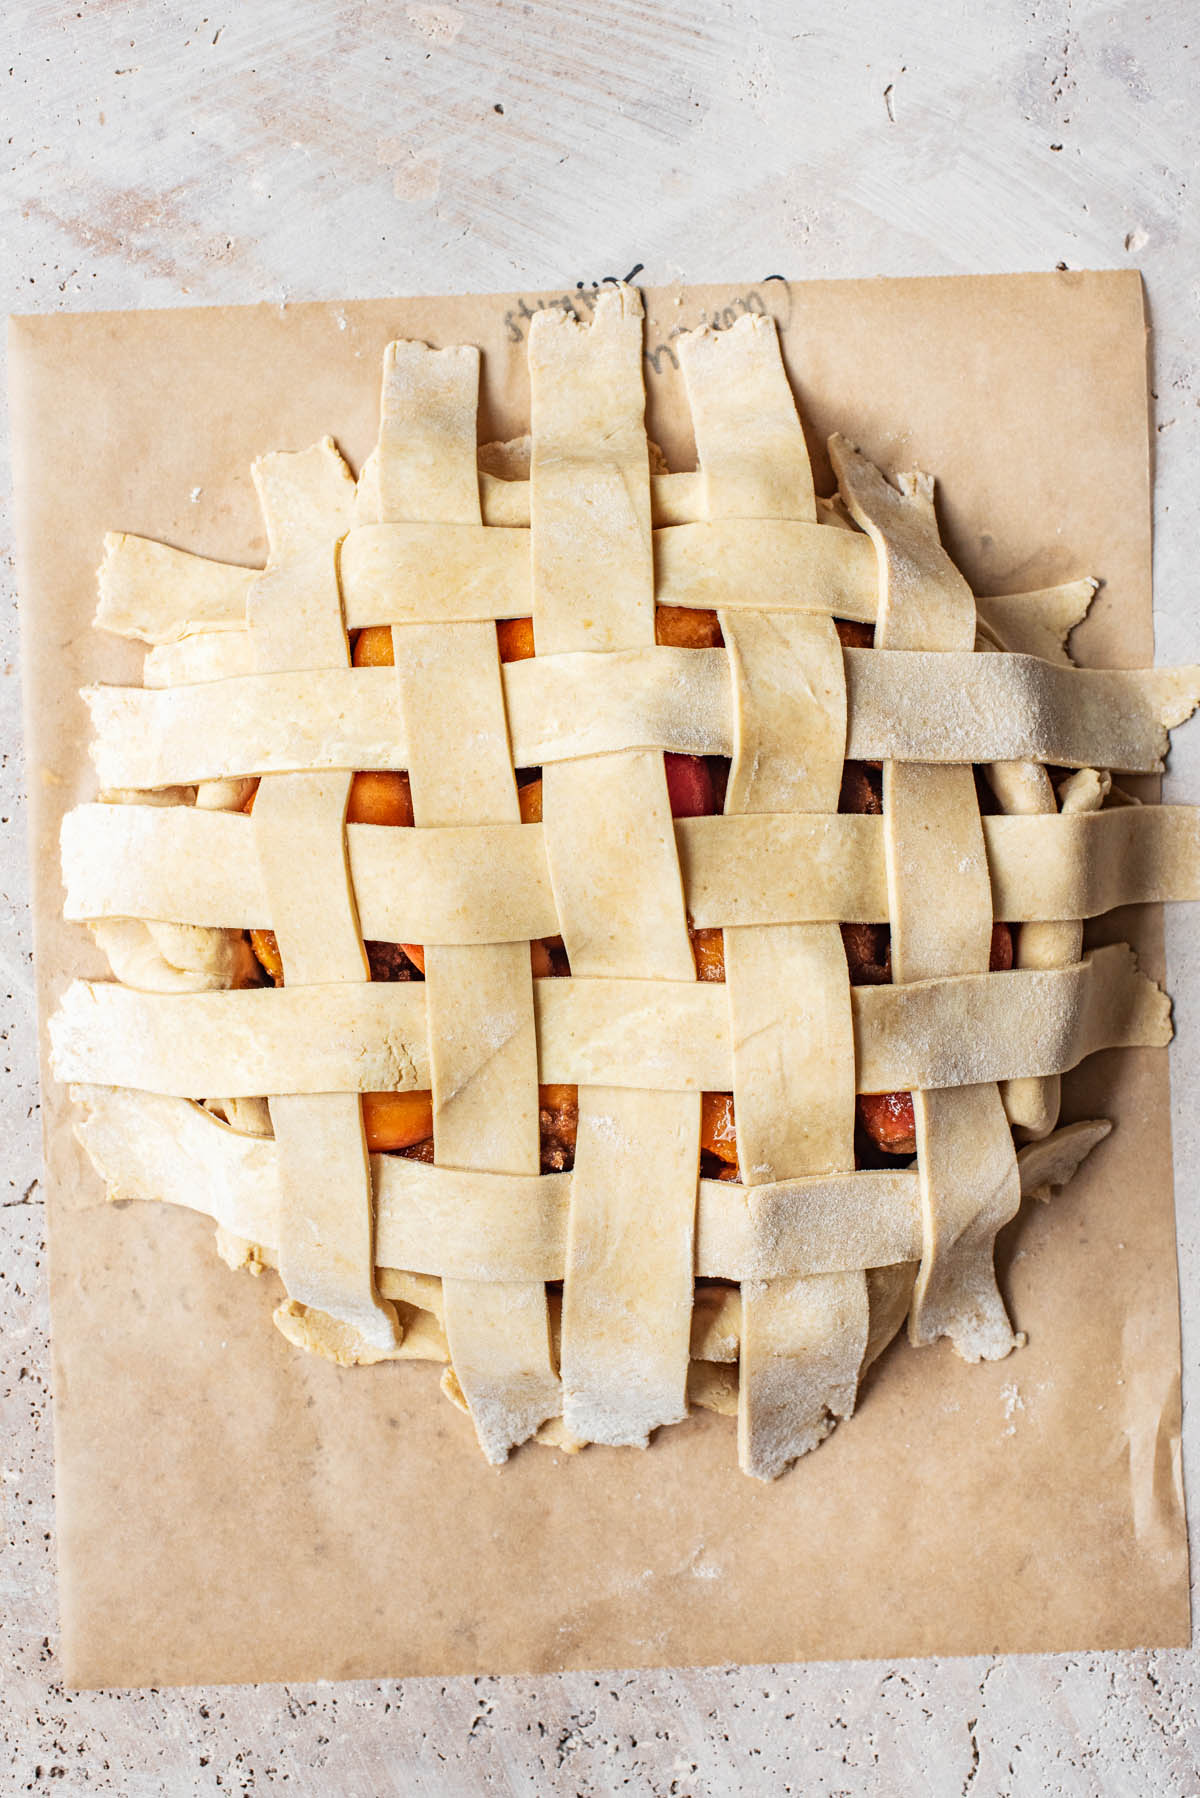 Lattice top for the pie before trimming and crimping.